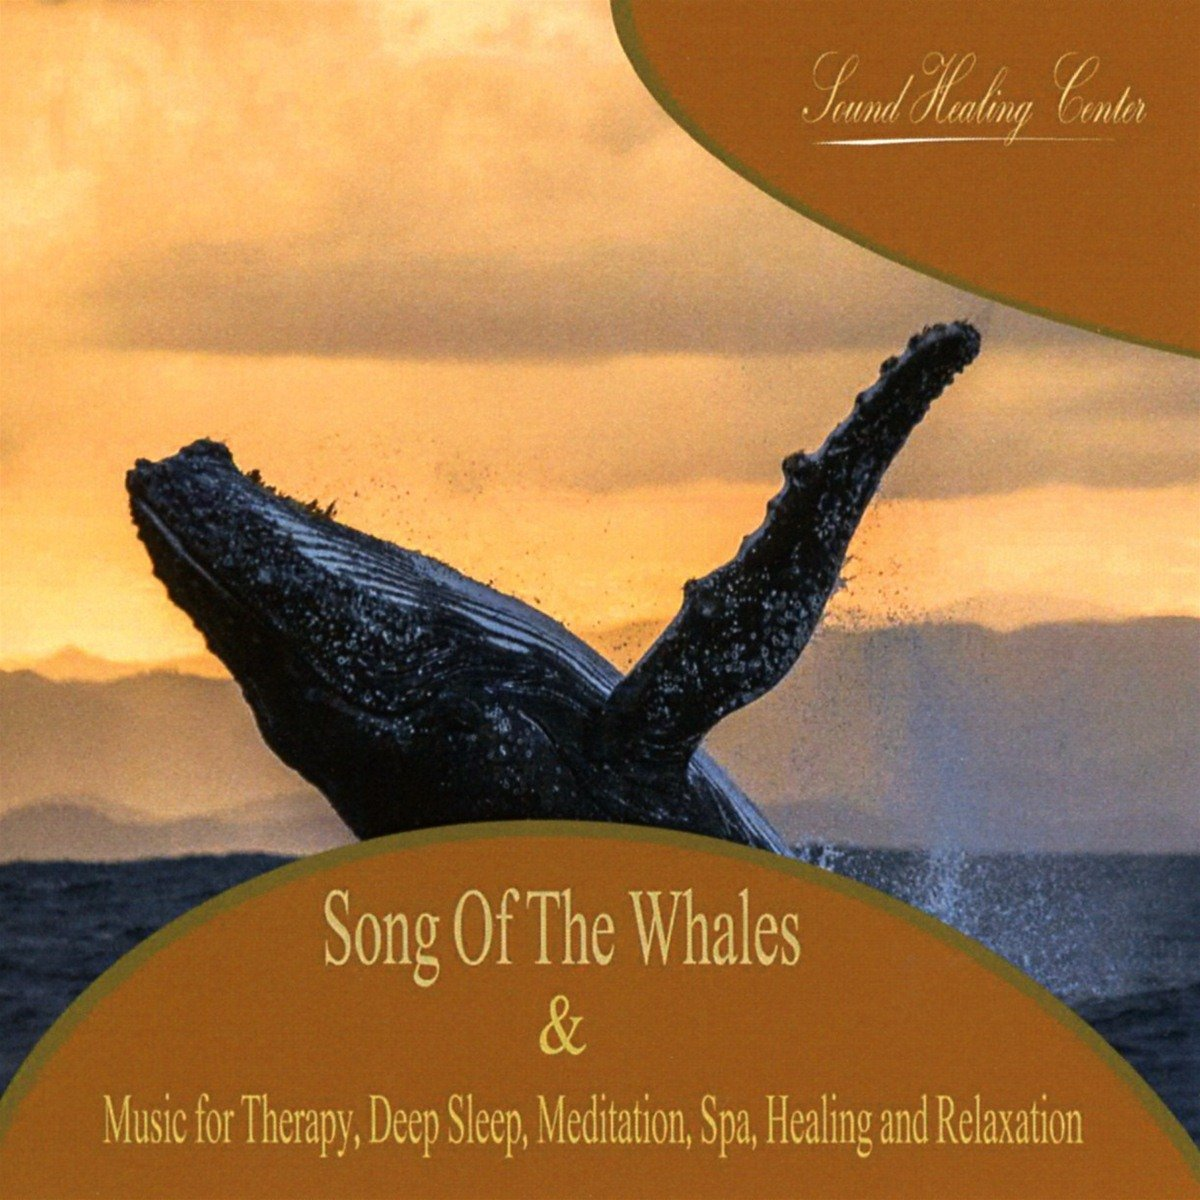 Song Of The Whales & Music for Therapy, Deep Sleep, Meditation, Spa, Healing